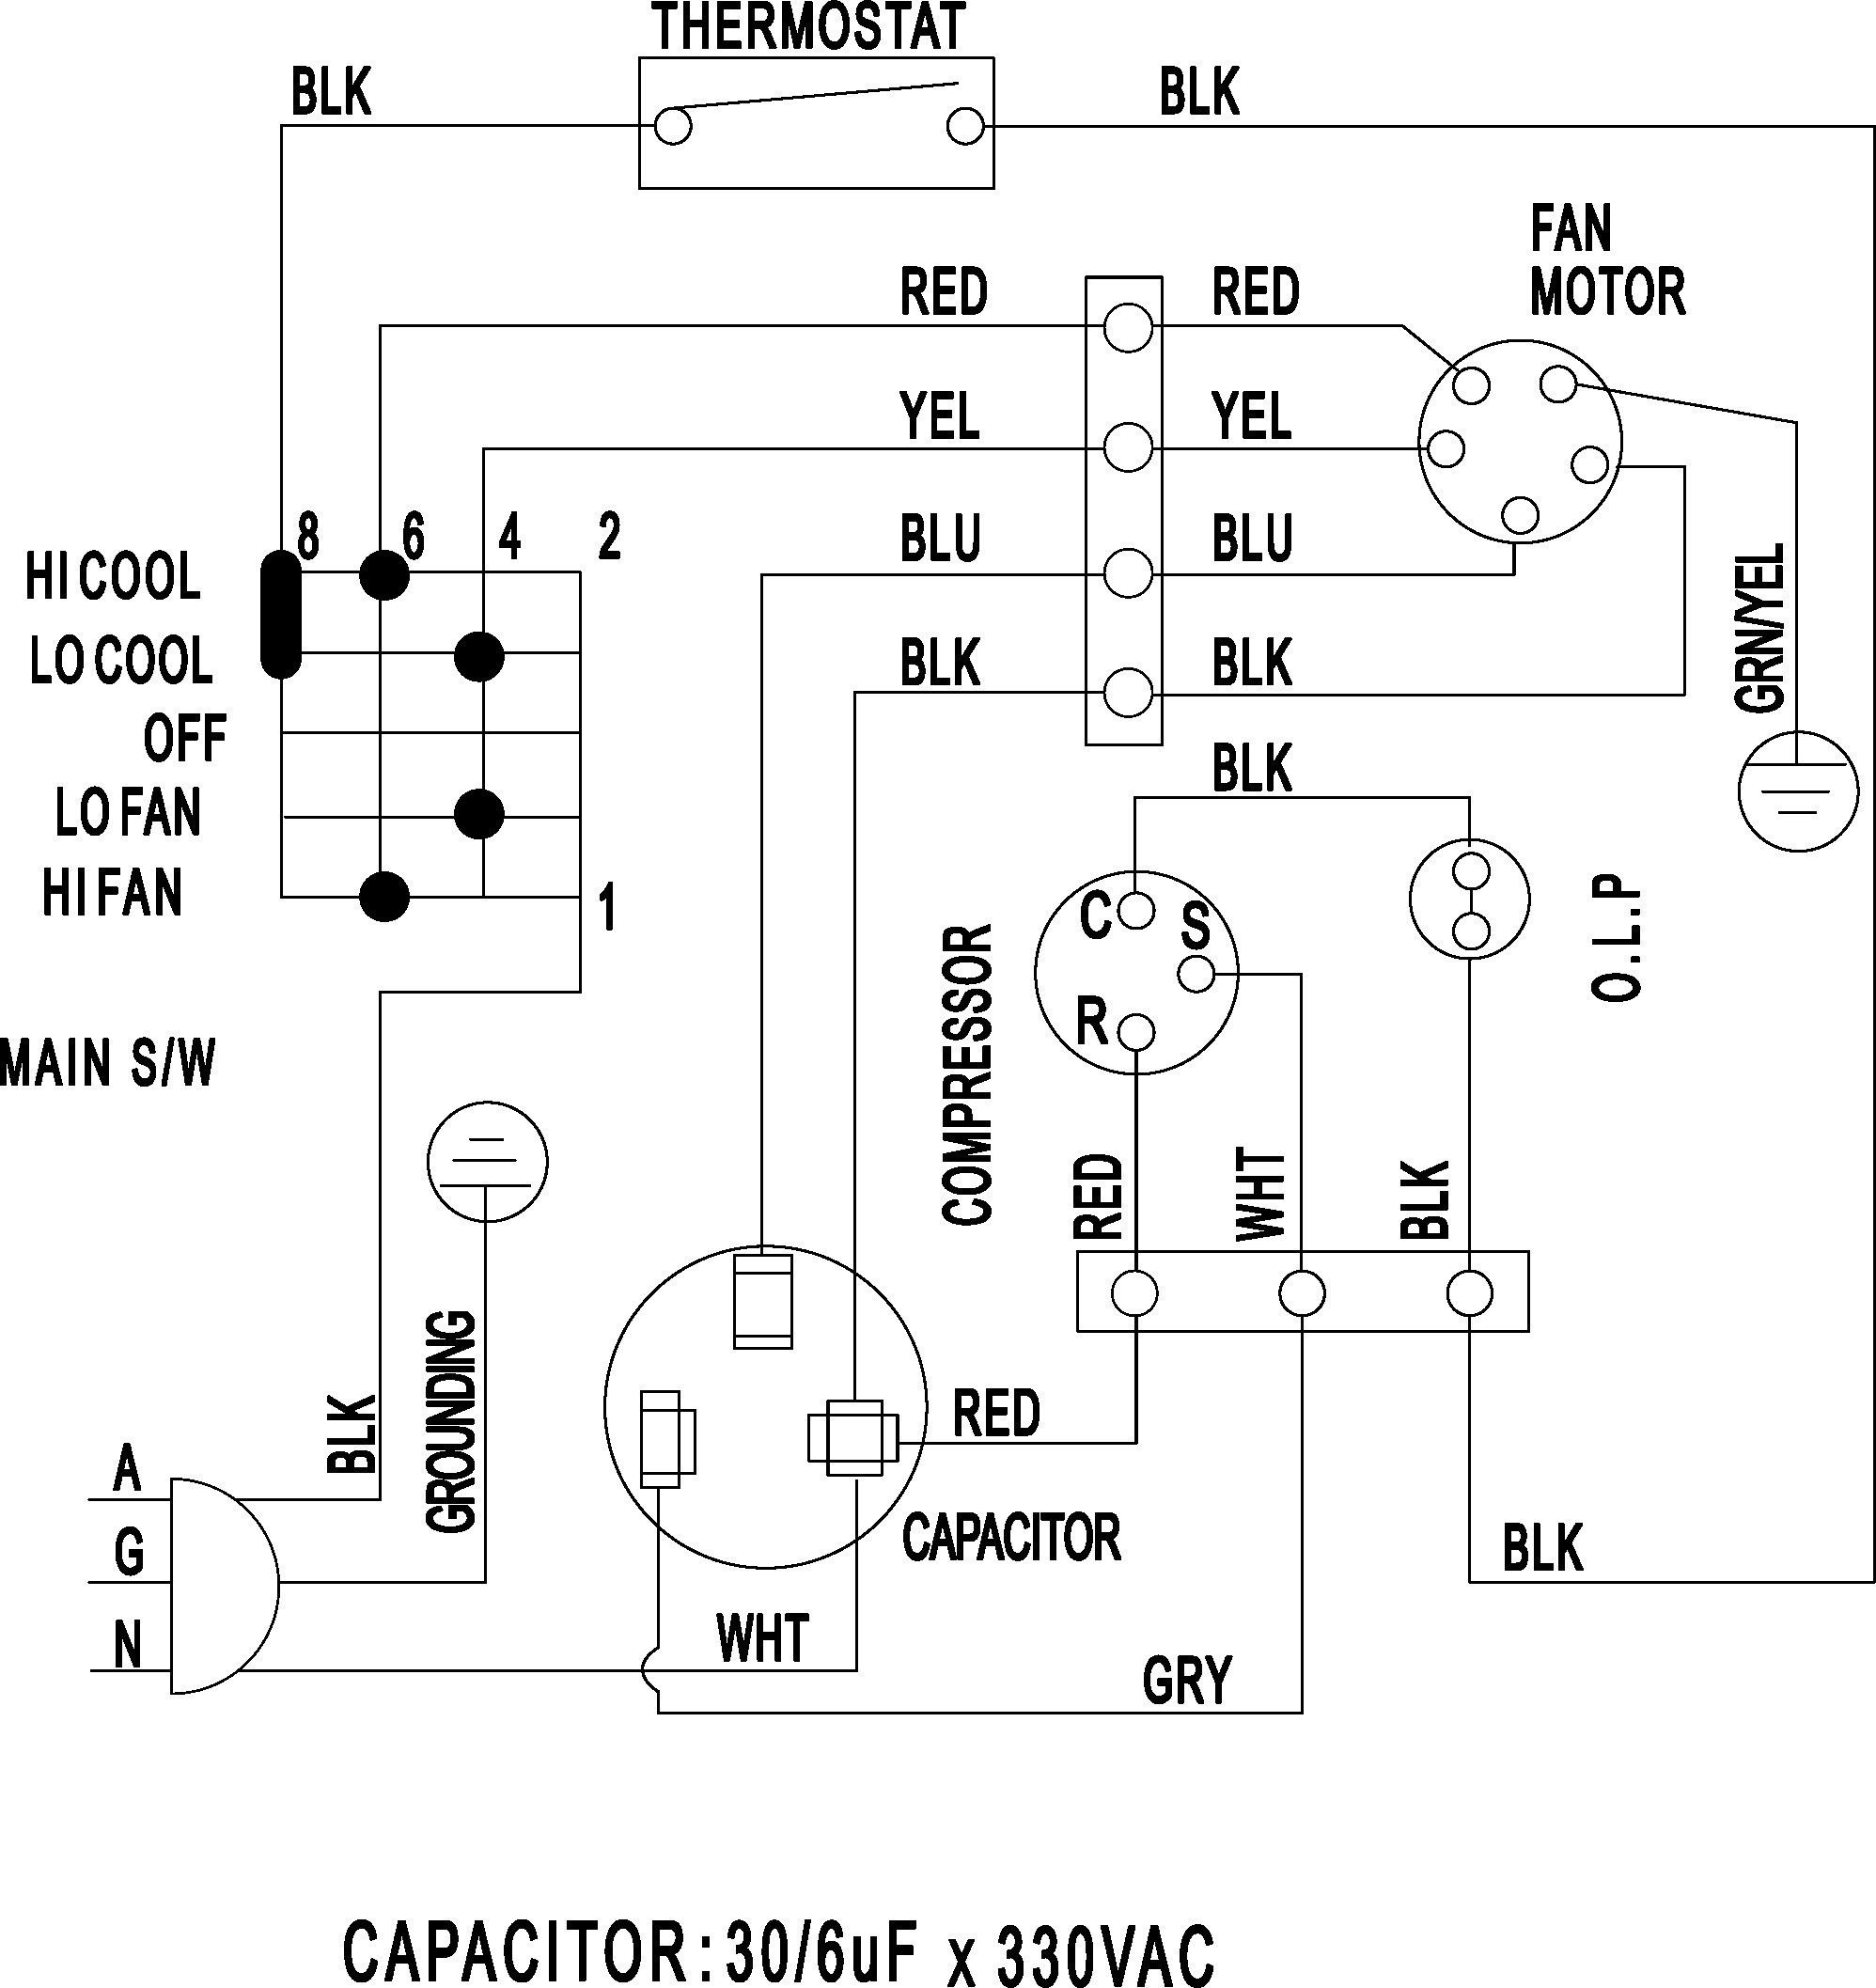 Unique Circuit Wiring Diagram Wiringdiagram Diagramming Diagramm Visuals Visualisation Graphical Electrical Circuit Diagram Ac Wiring Ac Capacitor